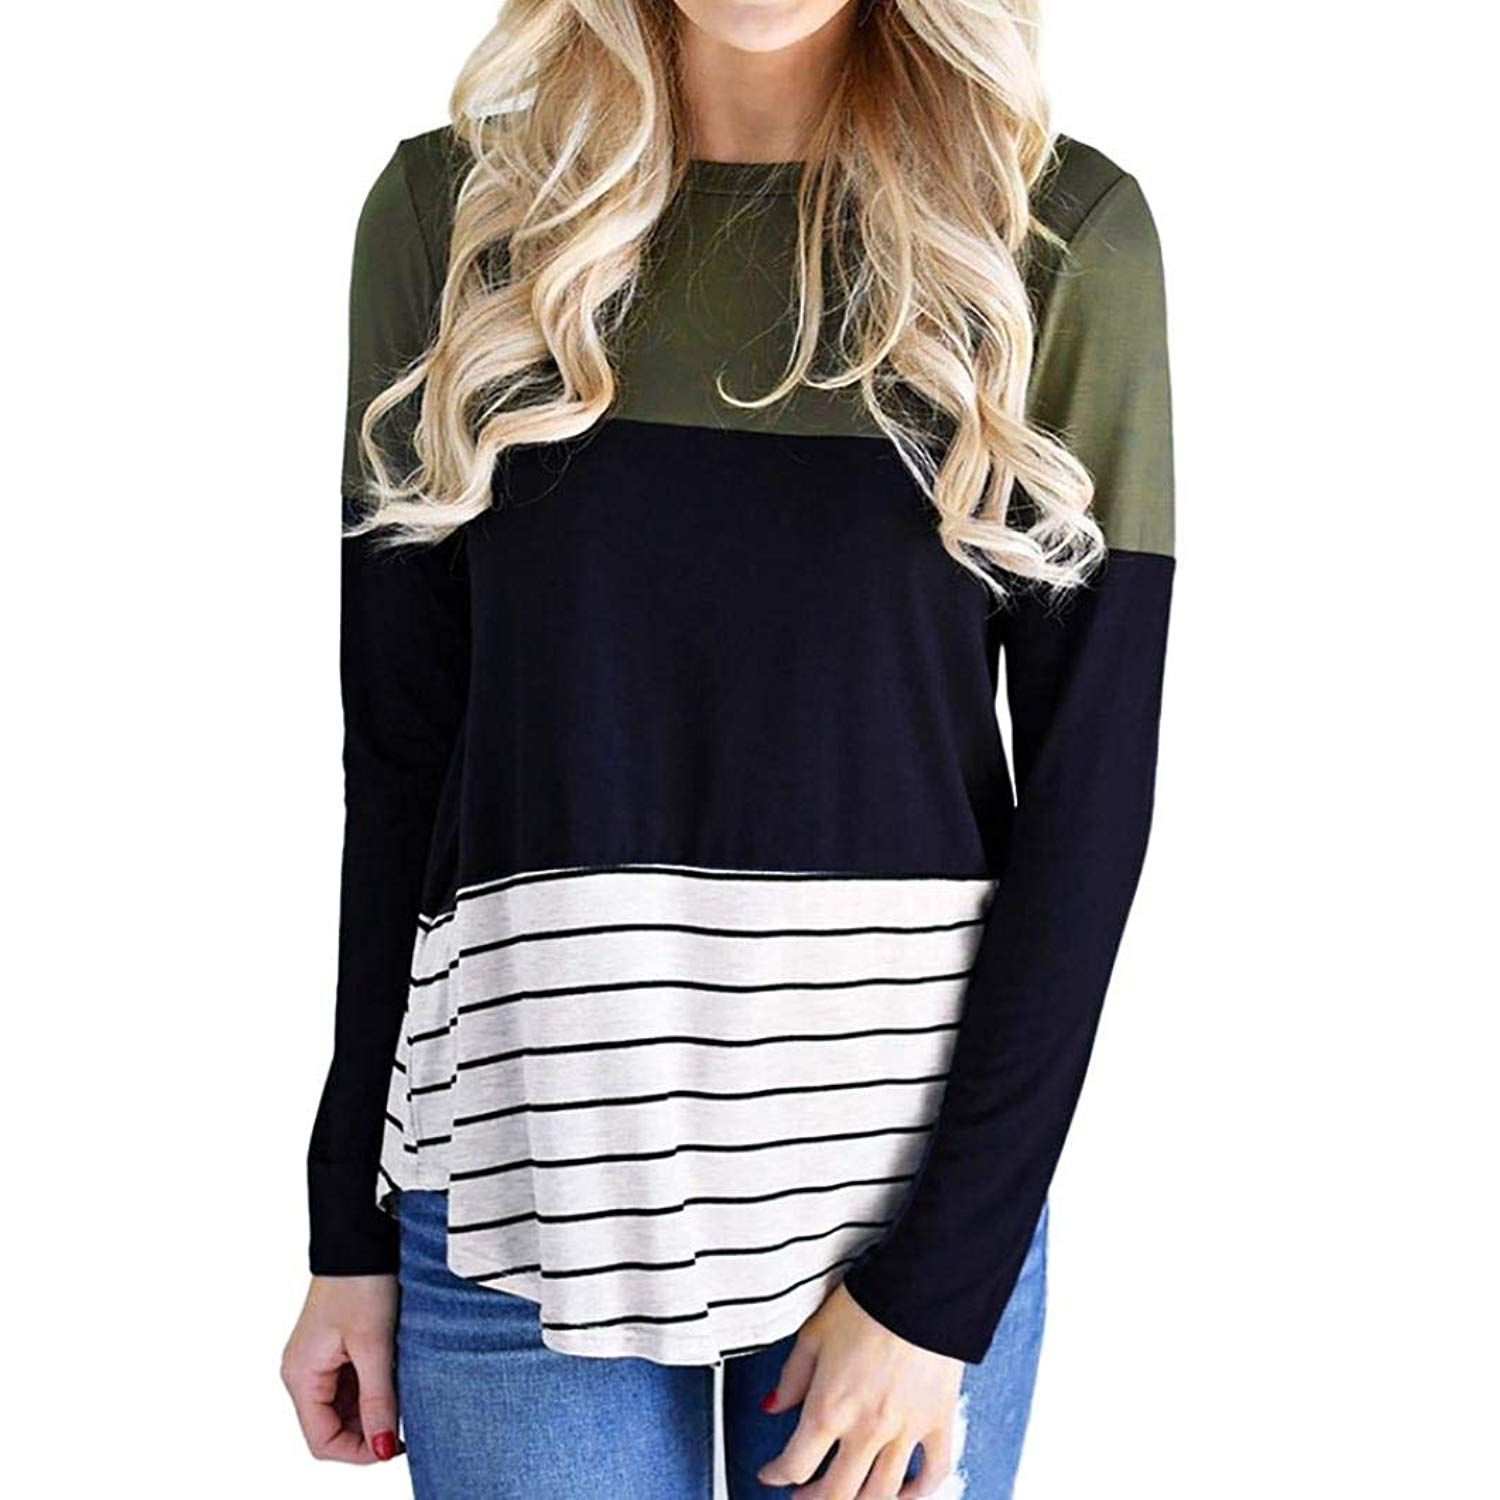 Feitengtd Women's Fashion Autumn Winter Striped T-Shirts Slim Fit Long Sleeve Patchwork Casual Blouse Tops